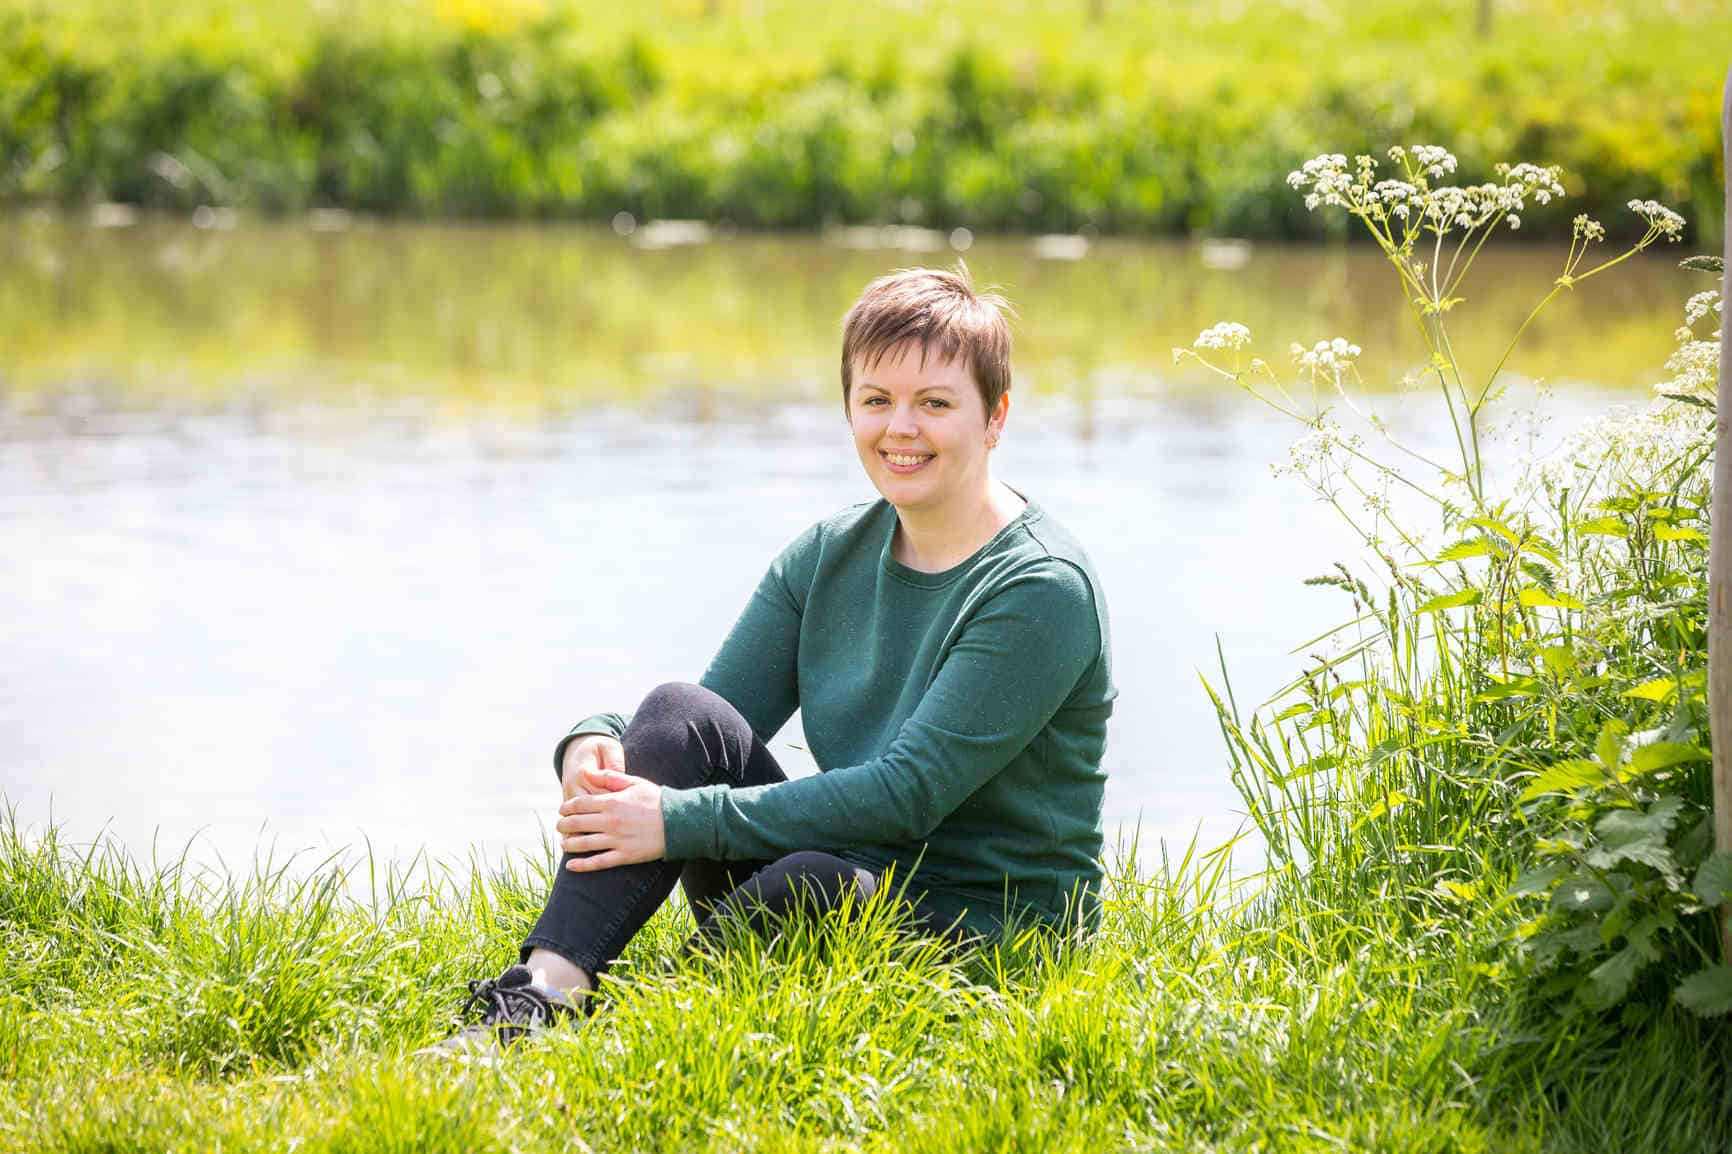 Fiona is sitting on the bright green grass in front of the River Avon. Behind her you can see the opposite riverbank. Fiona has one leg tucked into her chest which she is holding with her hands in a relaxed pose. She is smiling, wearing a green sweater, black skinny jeans and black trainers.